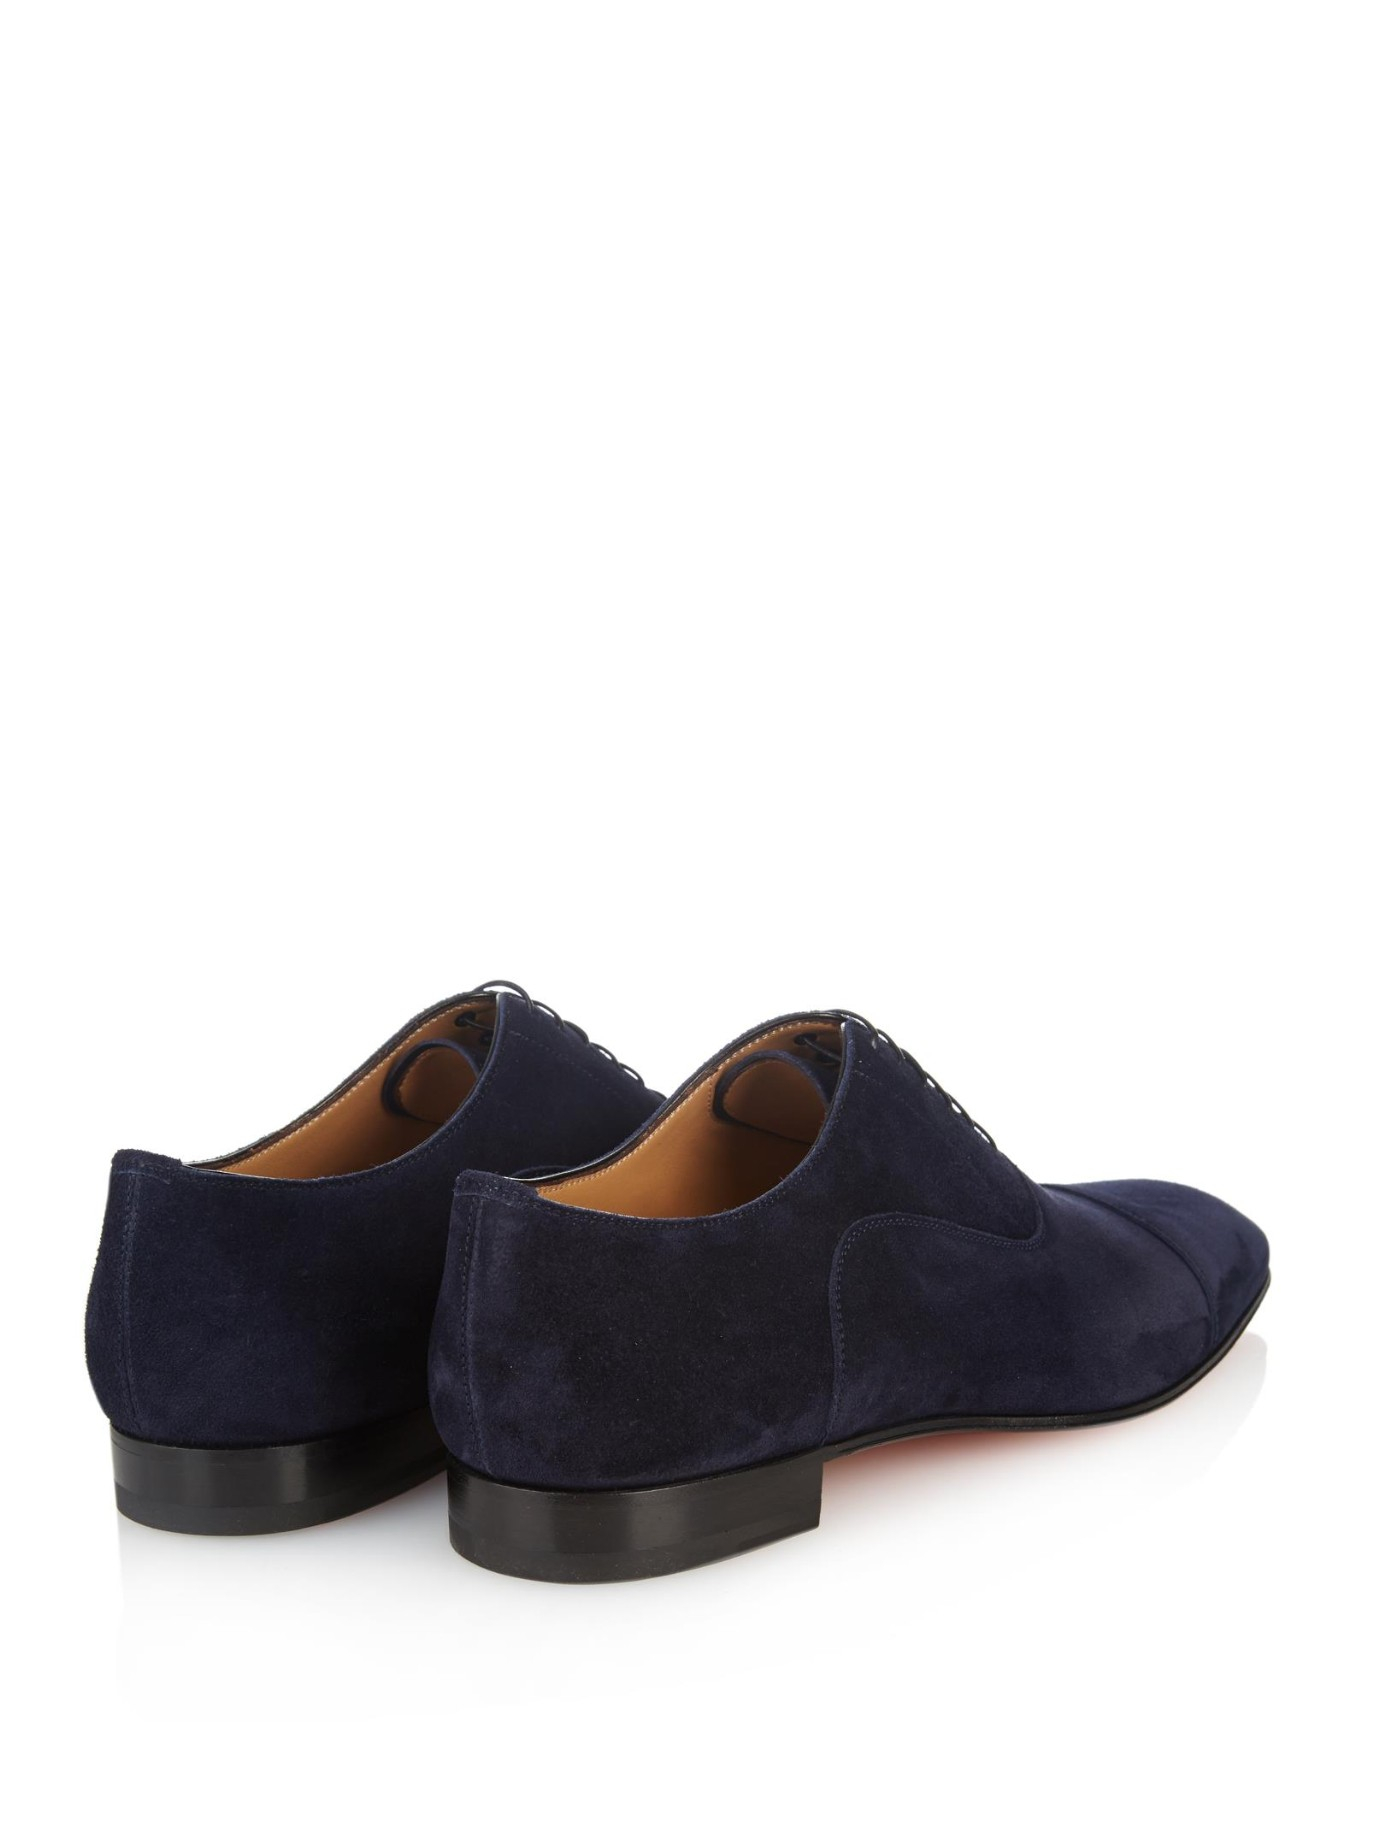 c9afa8e50983 Lyst - Christian Louboutin Greggo Suede Lace-Up Shoes in Blue for Men